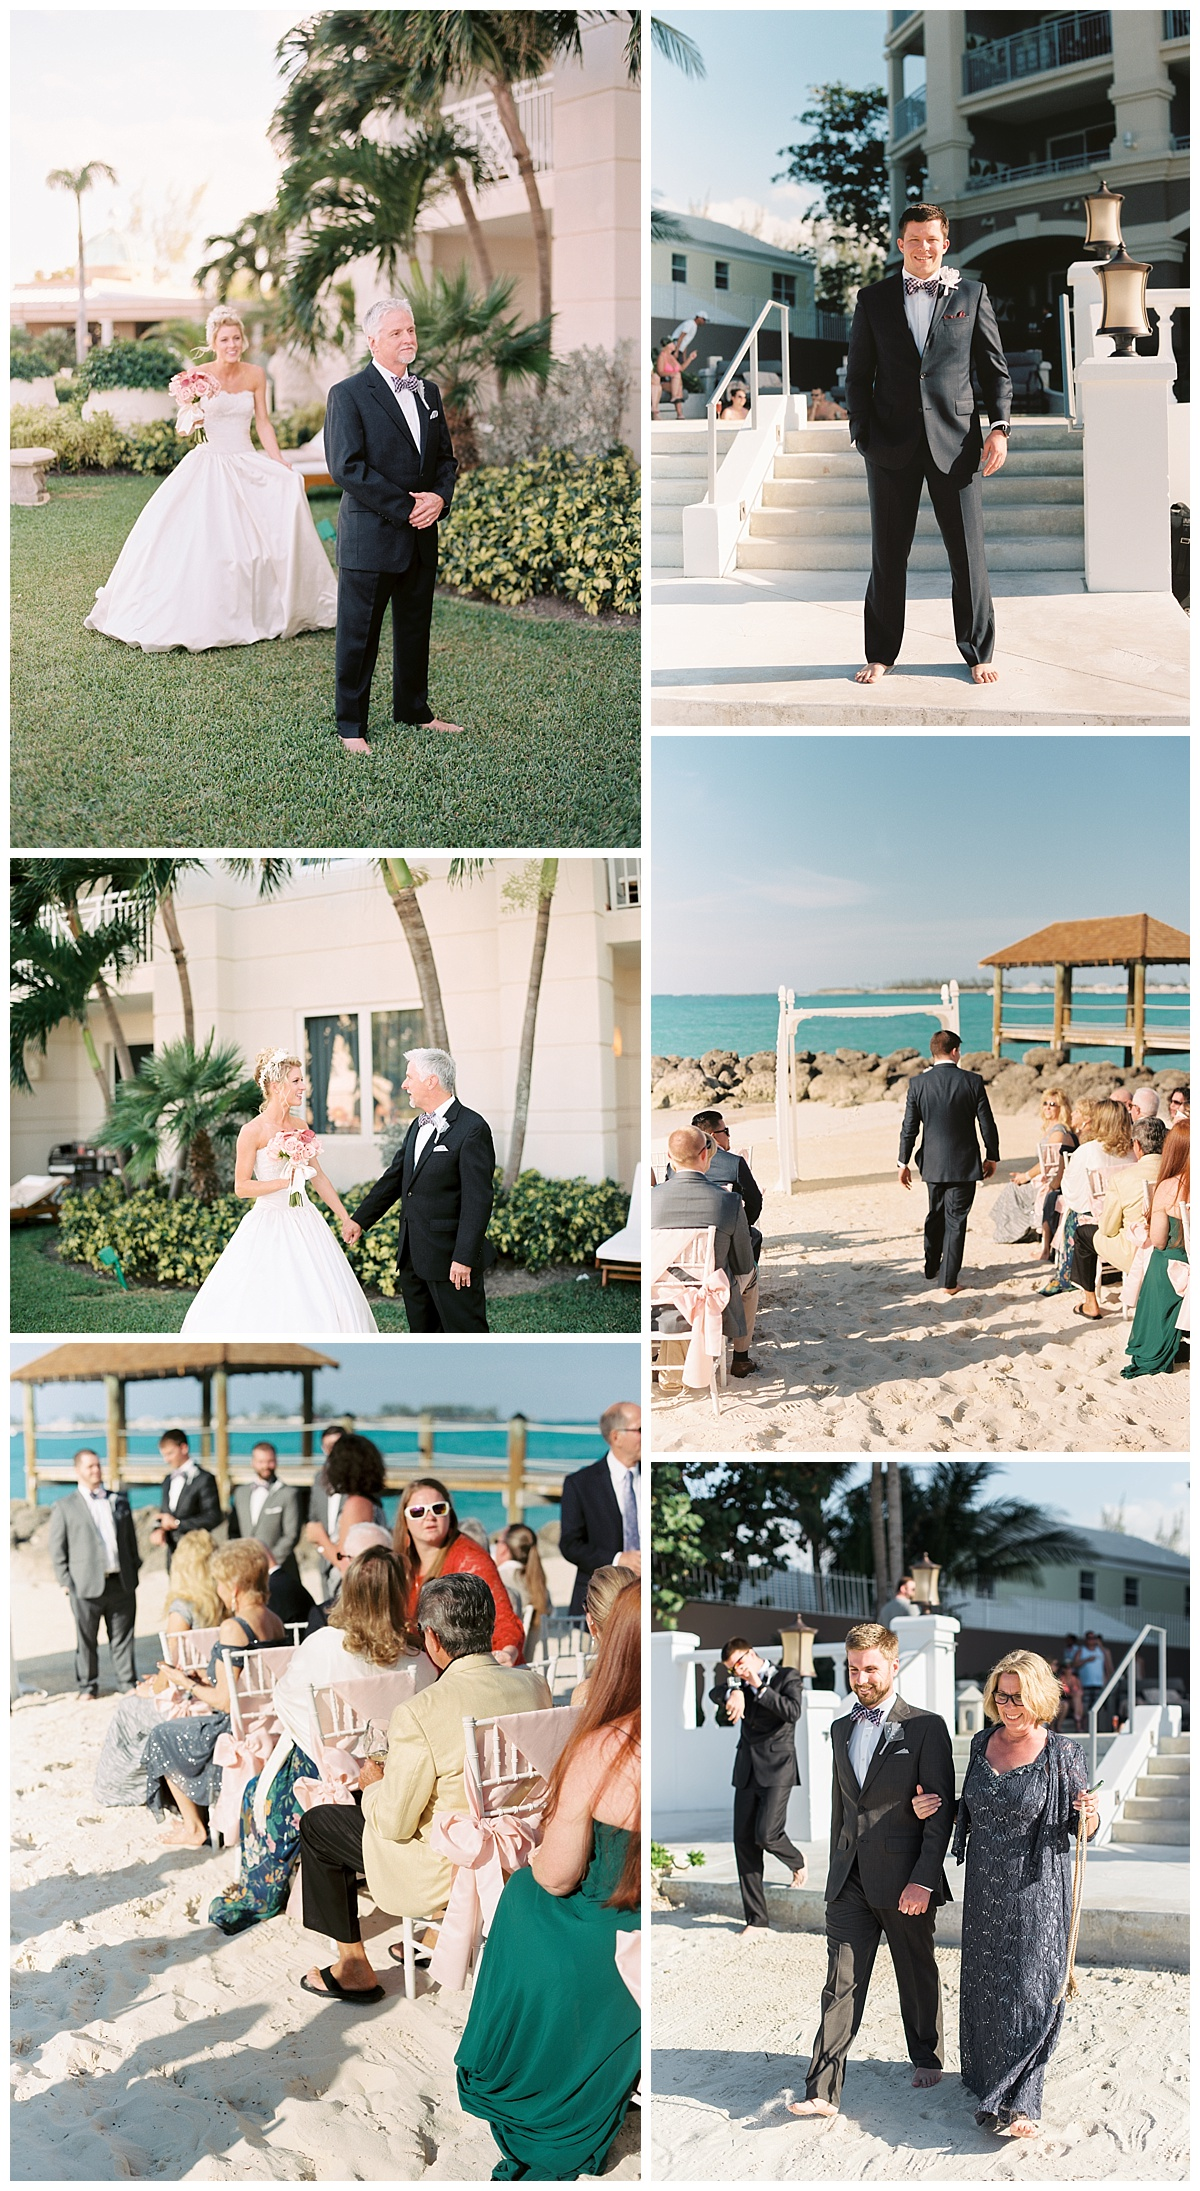 sandals-bahamas-wedding-ar-photography-3.jpg